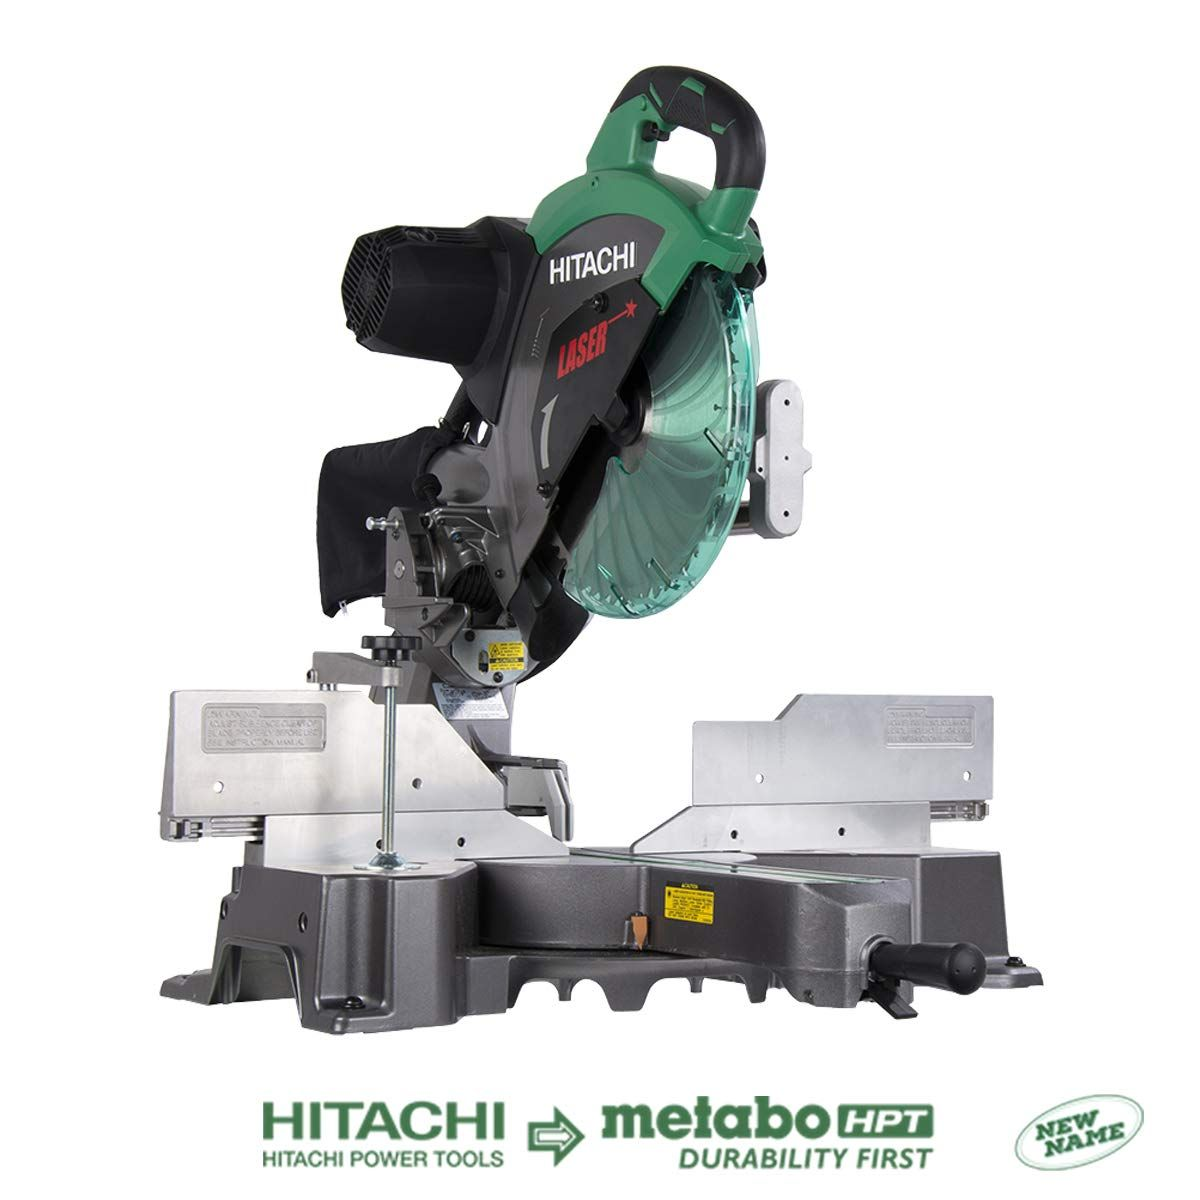 Metabo Hpt Hitachi C12rsh2 Sliding Compound Miter Saw Sliding Compound Miter Saw Sliding Mitre Saw Compound Mitre Saw